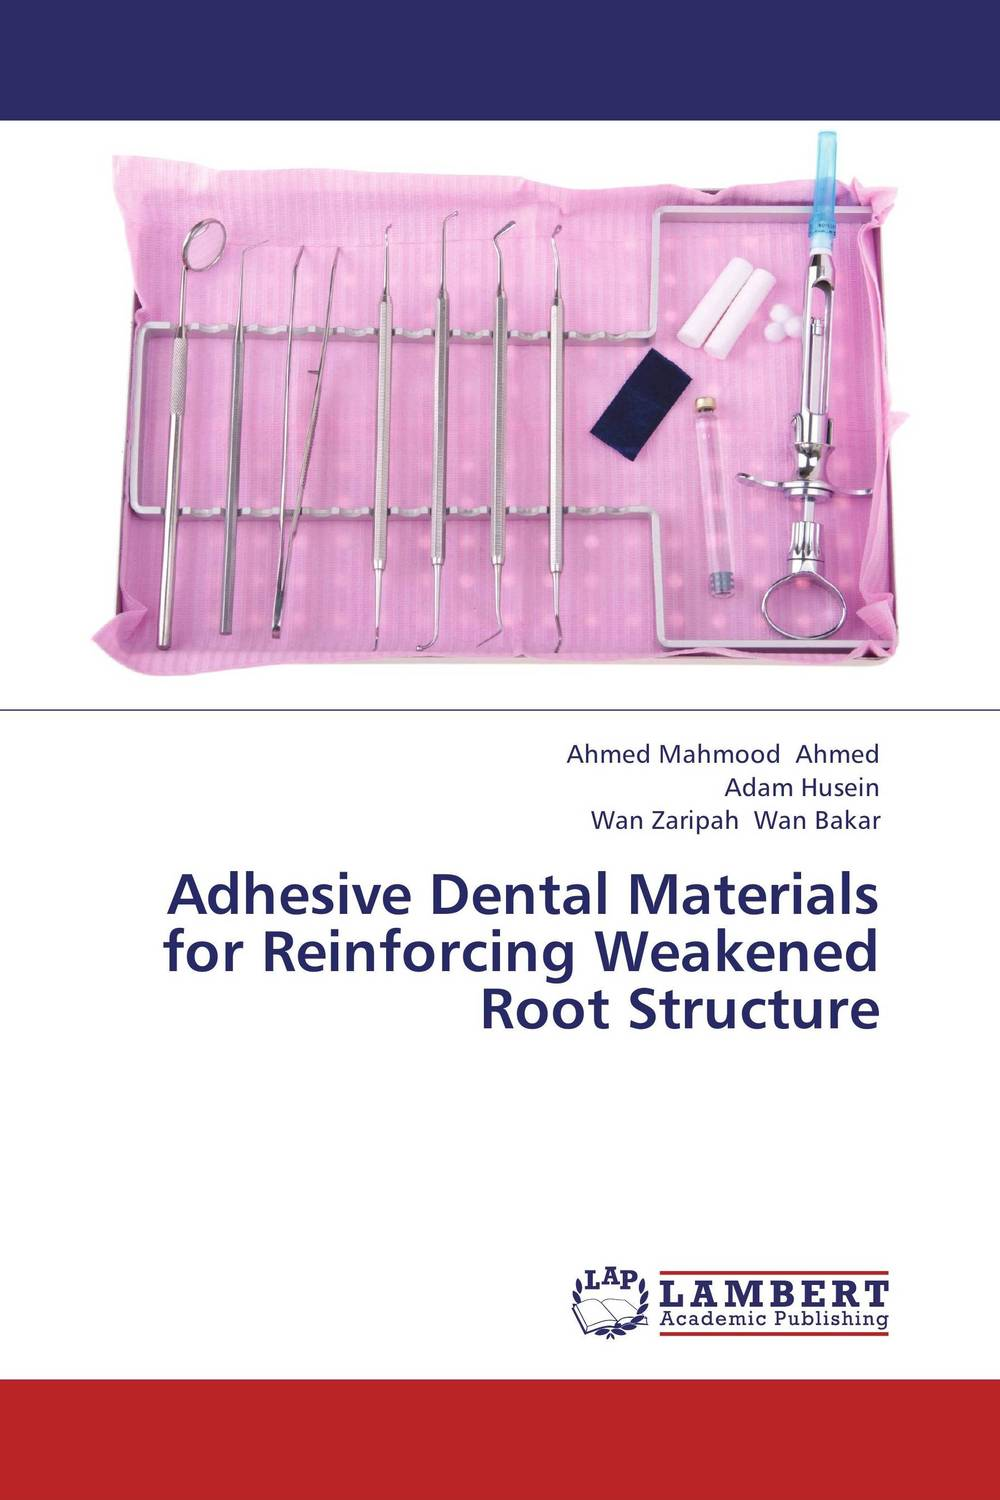 Adhesive Dental Materials for Reinforcing Weakened Root Structure